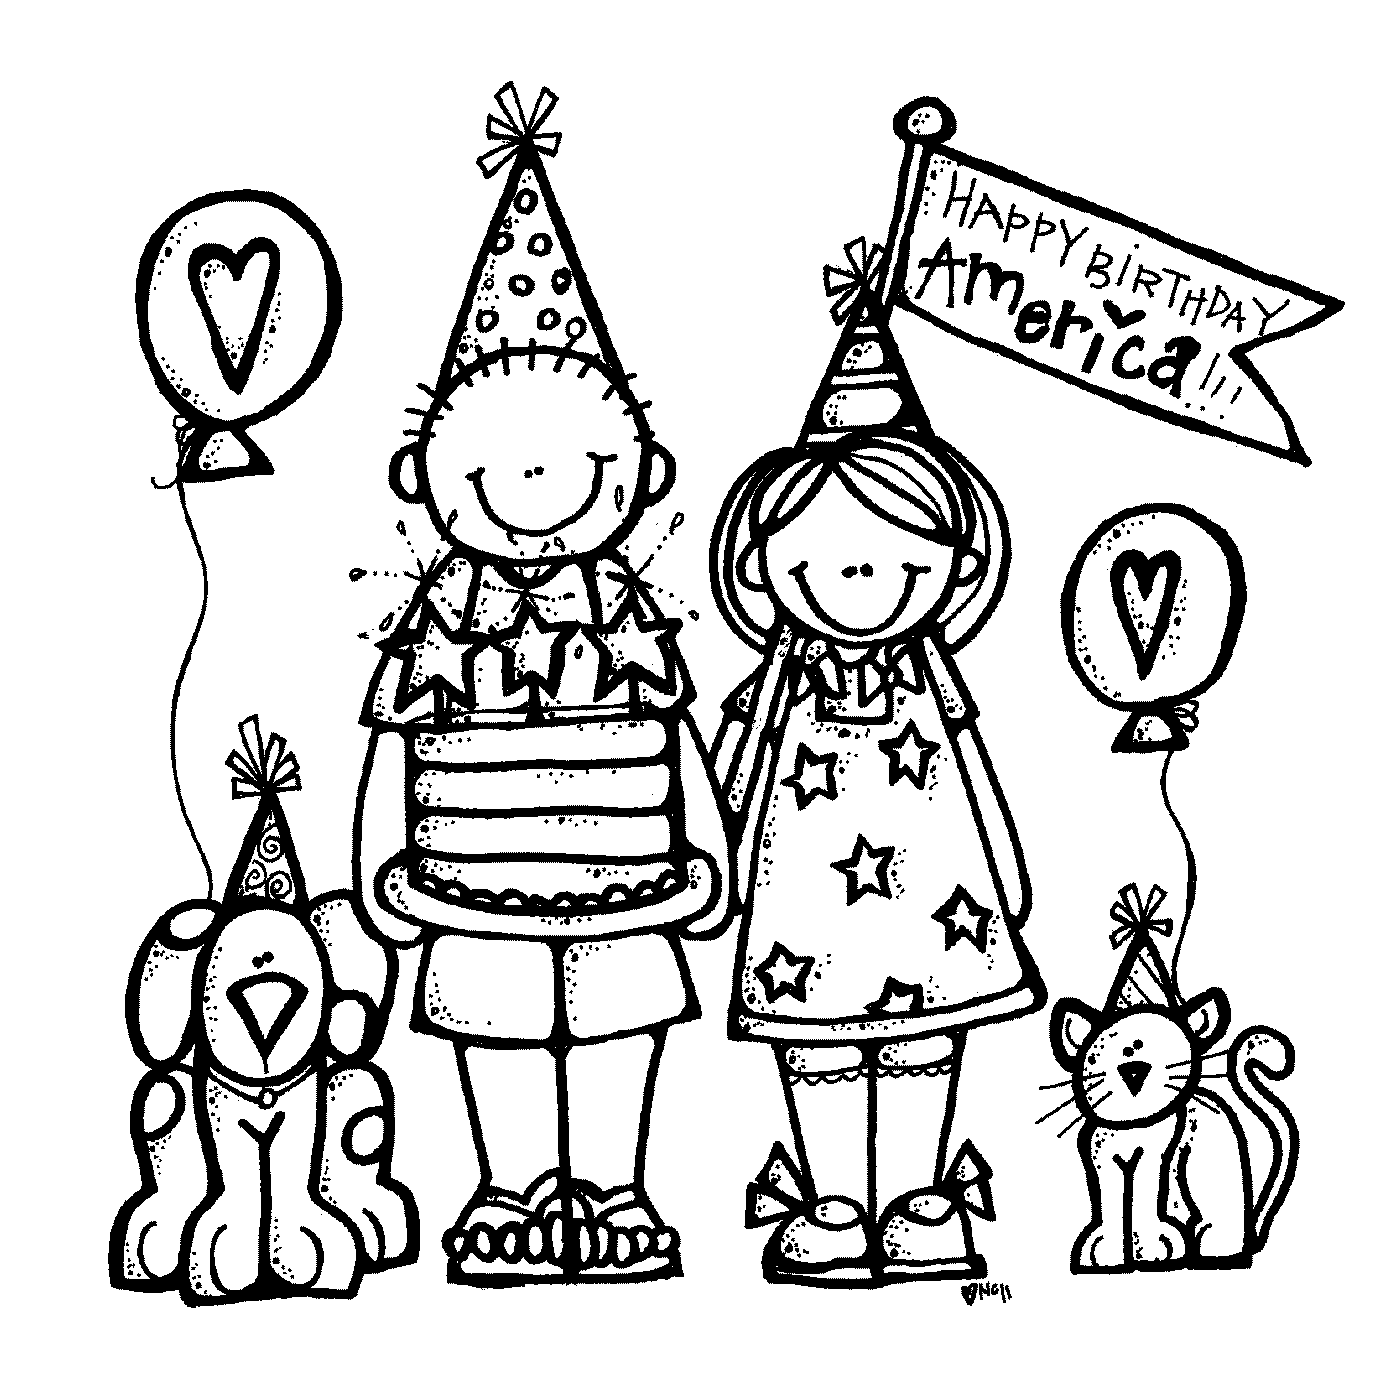 happy birthday america coloring pages - photo#8